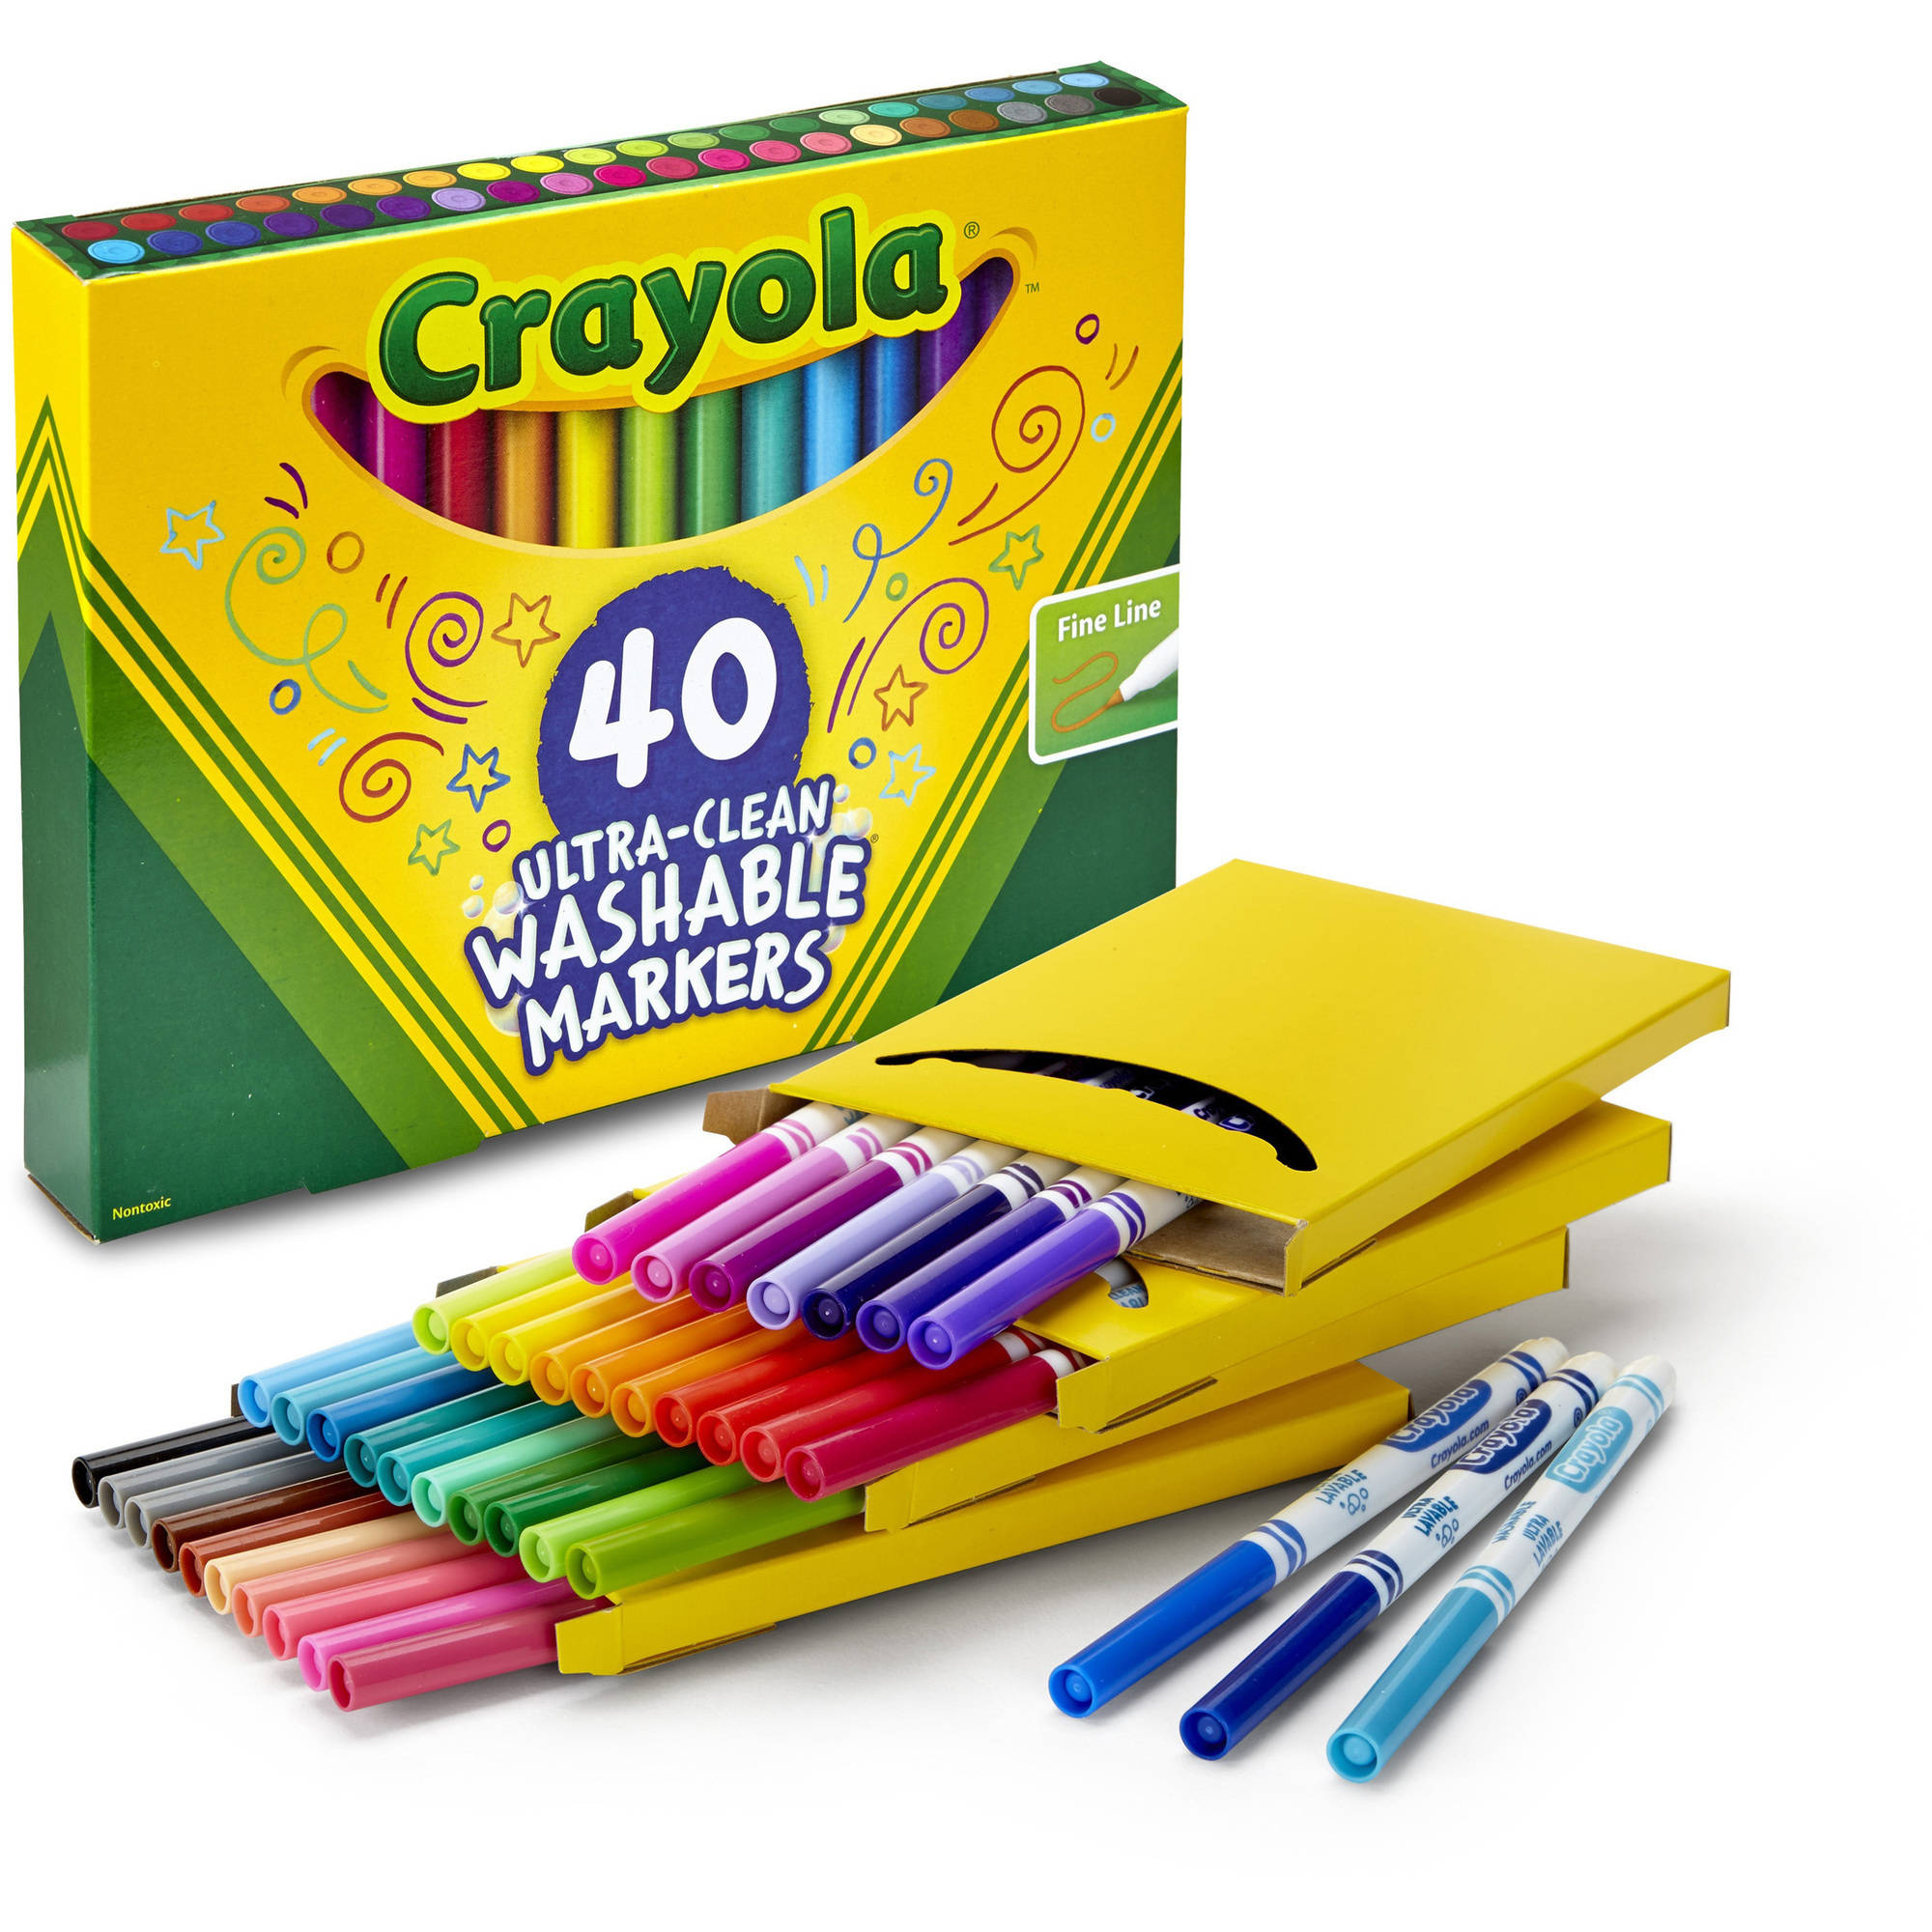 40-Count Crayola Fineline Ultra-Clean Markers